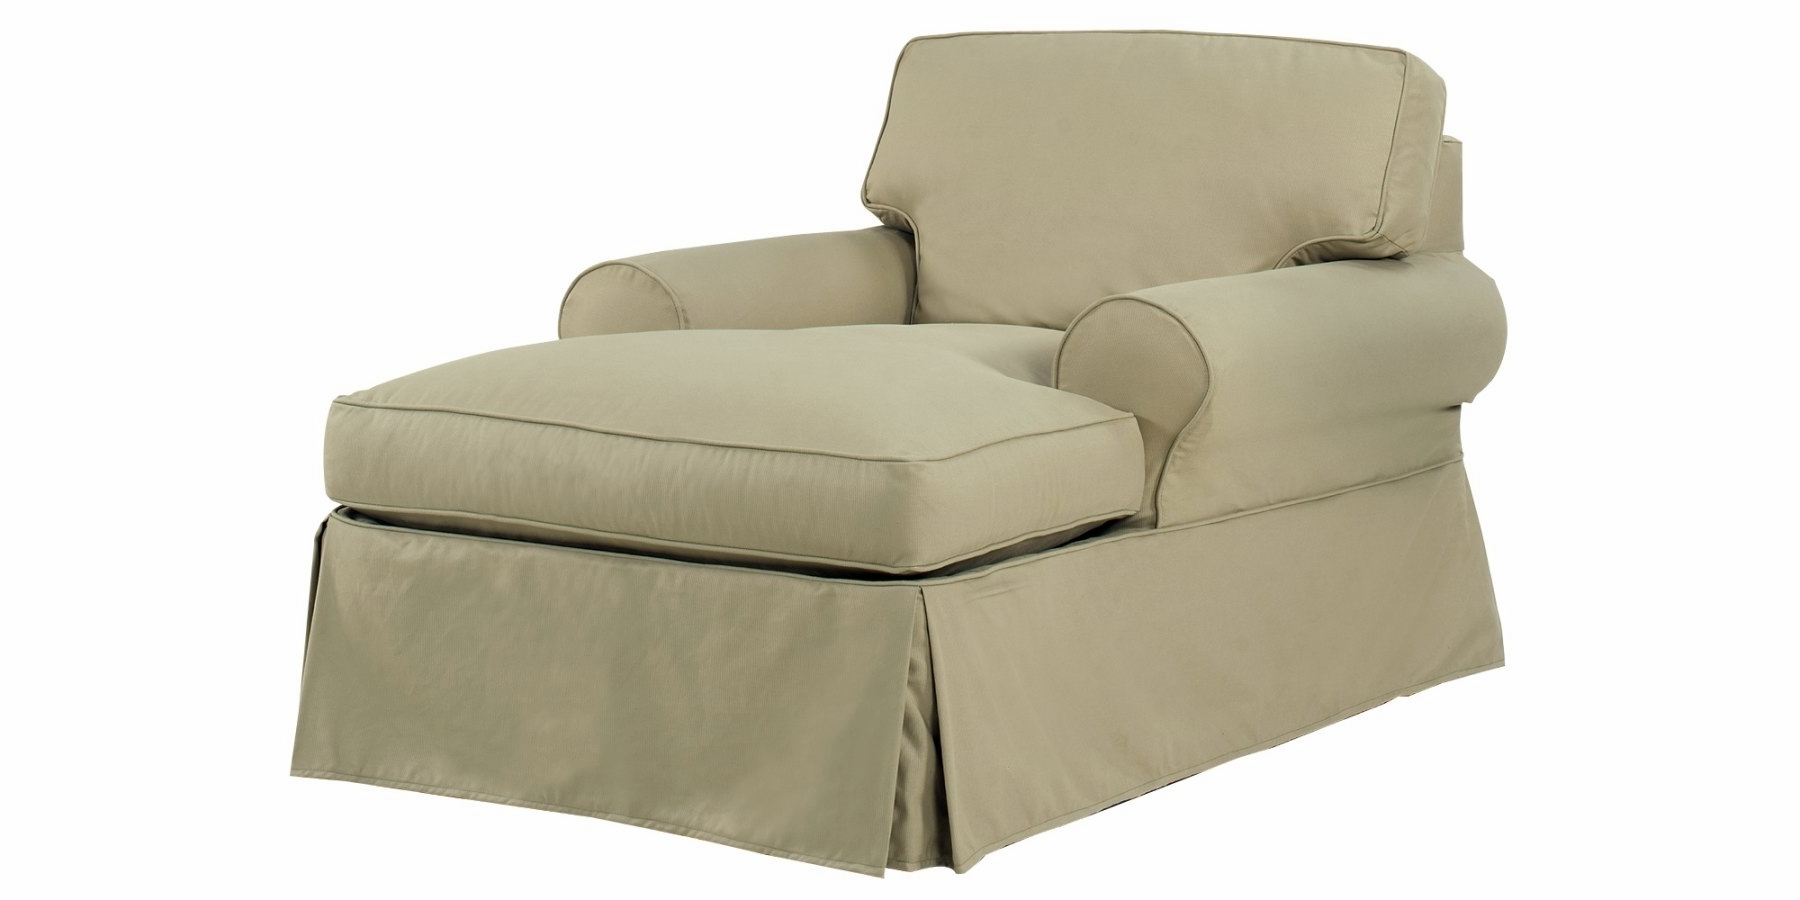 Well Liked Fresh Cheap Clearance Indoor Chaise Lounge Chairs #20884 With Regard To Chaise Lounge Chairs With Arms (View 15 of 15)